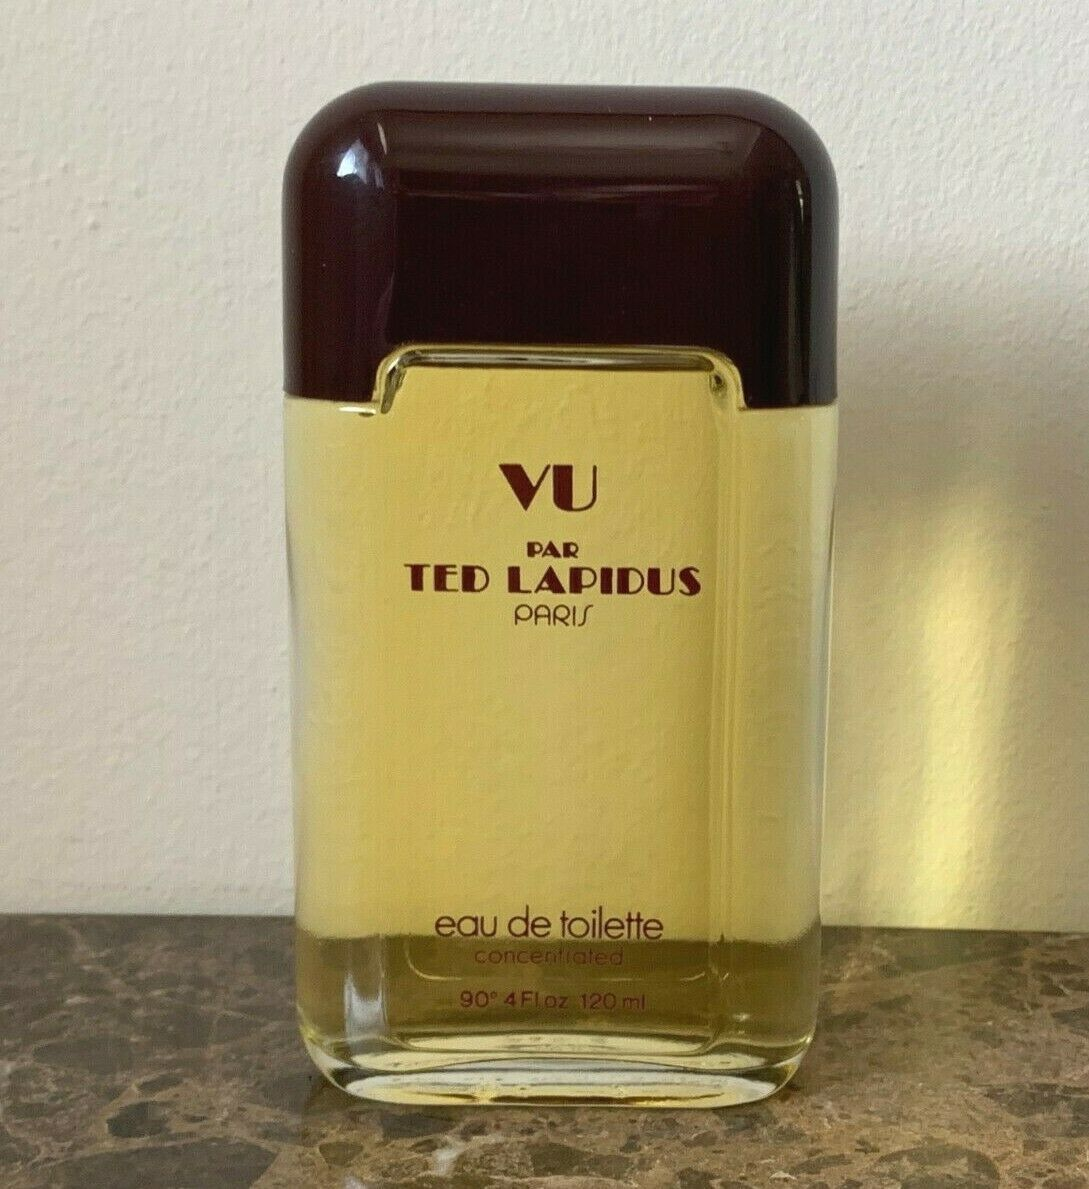 Primary image for Vintage Ted Lapidus Vu 4 Oz 120 Ml Concentrated EAU de Toilette Perfume Bottle